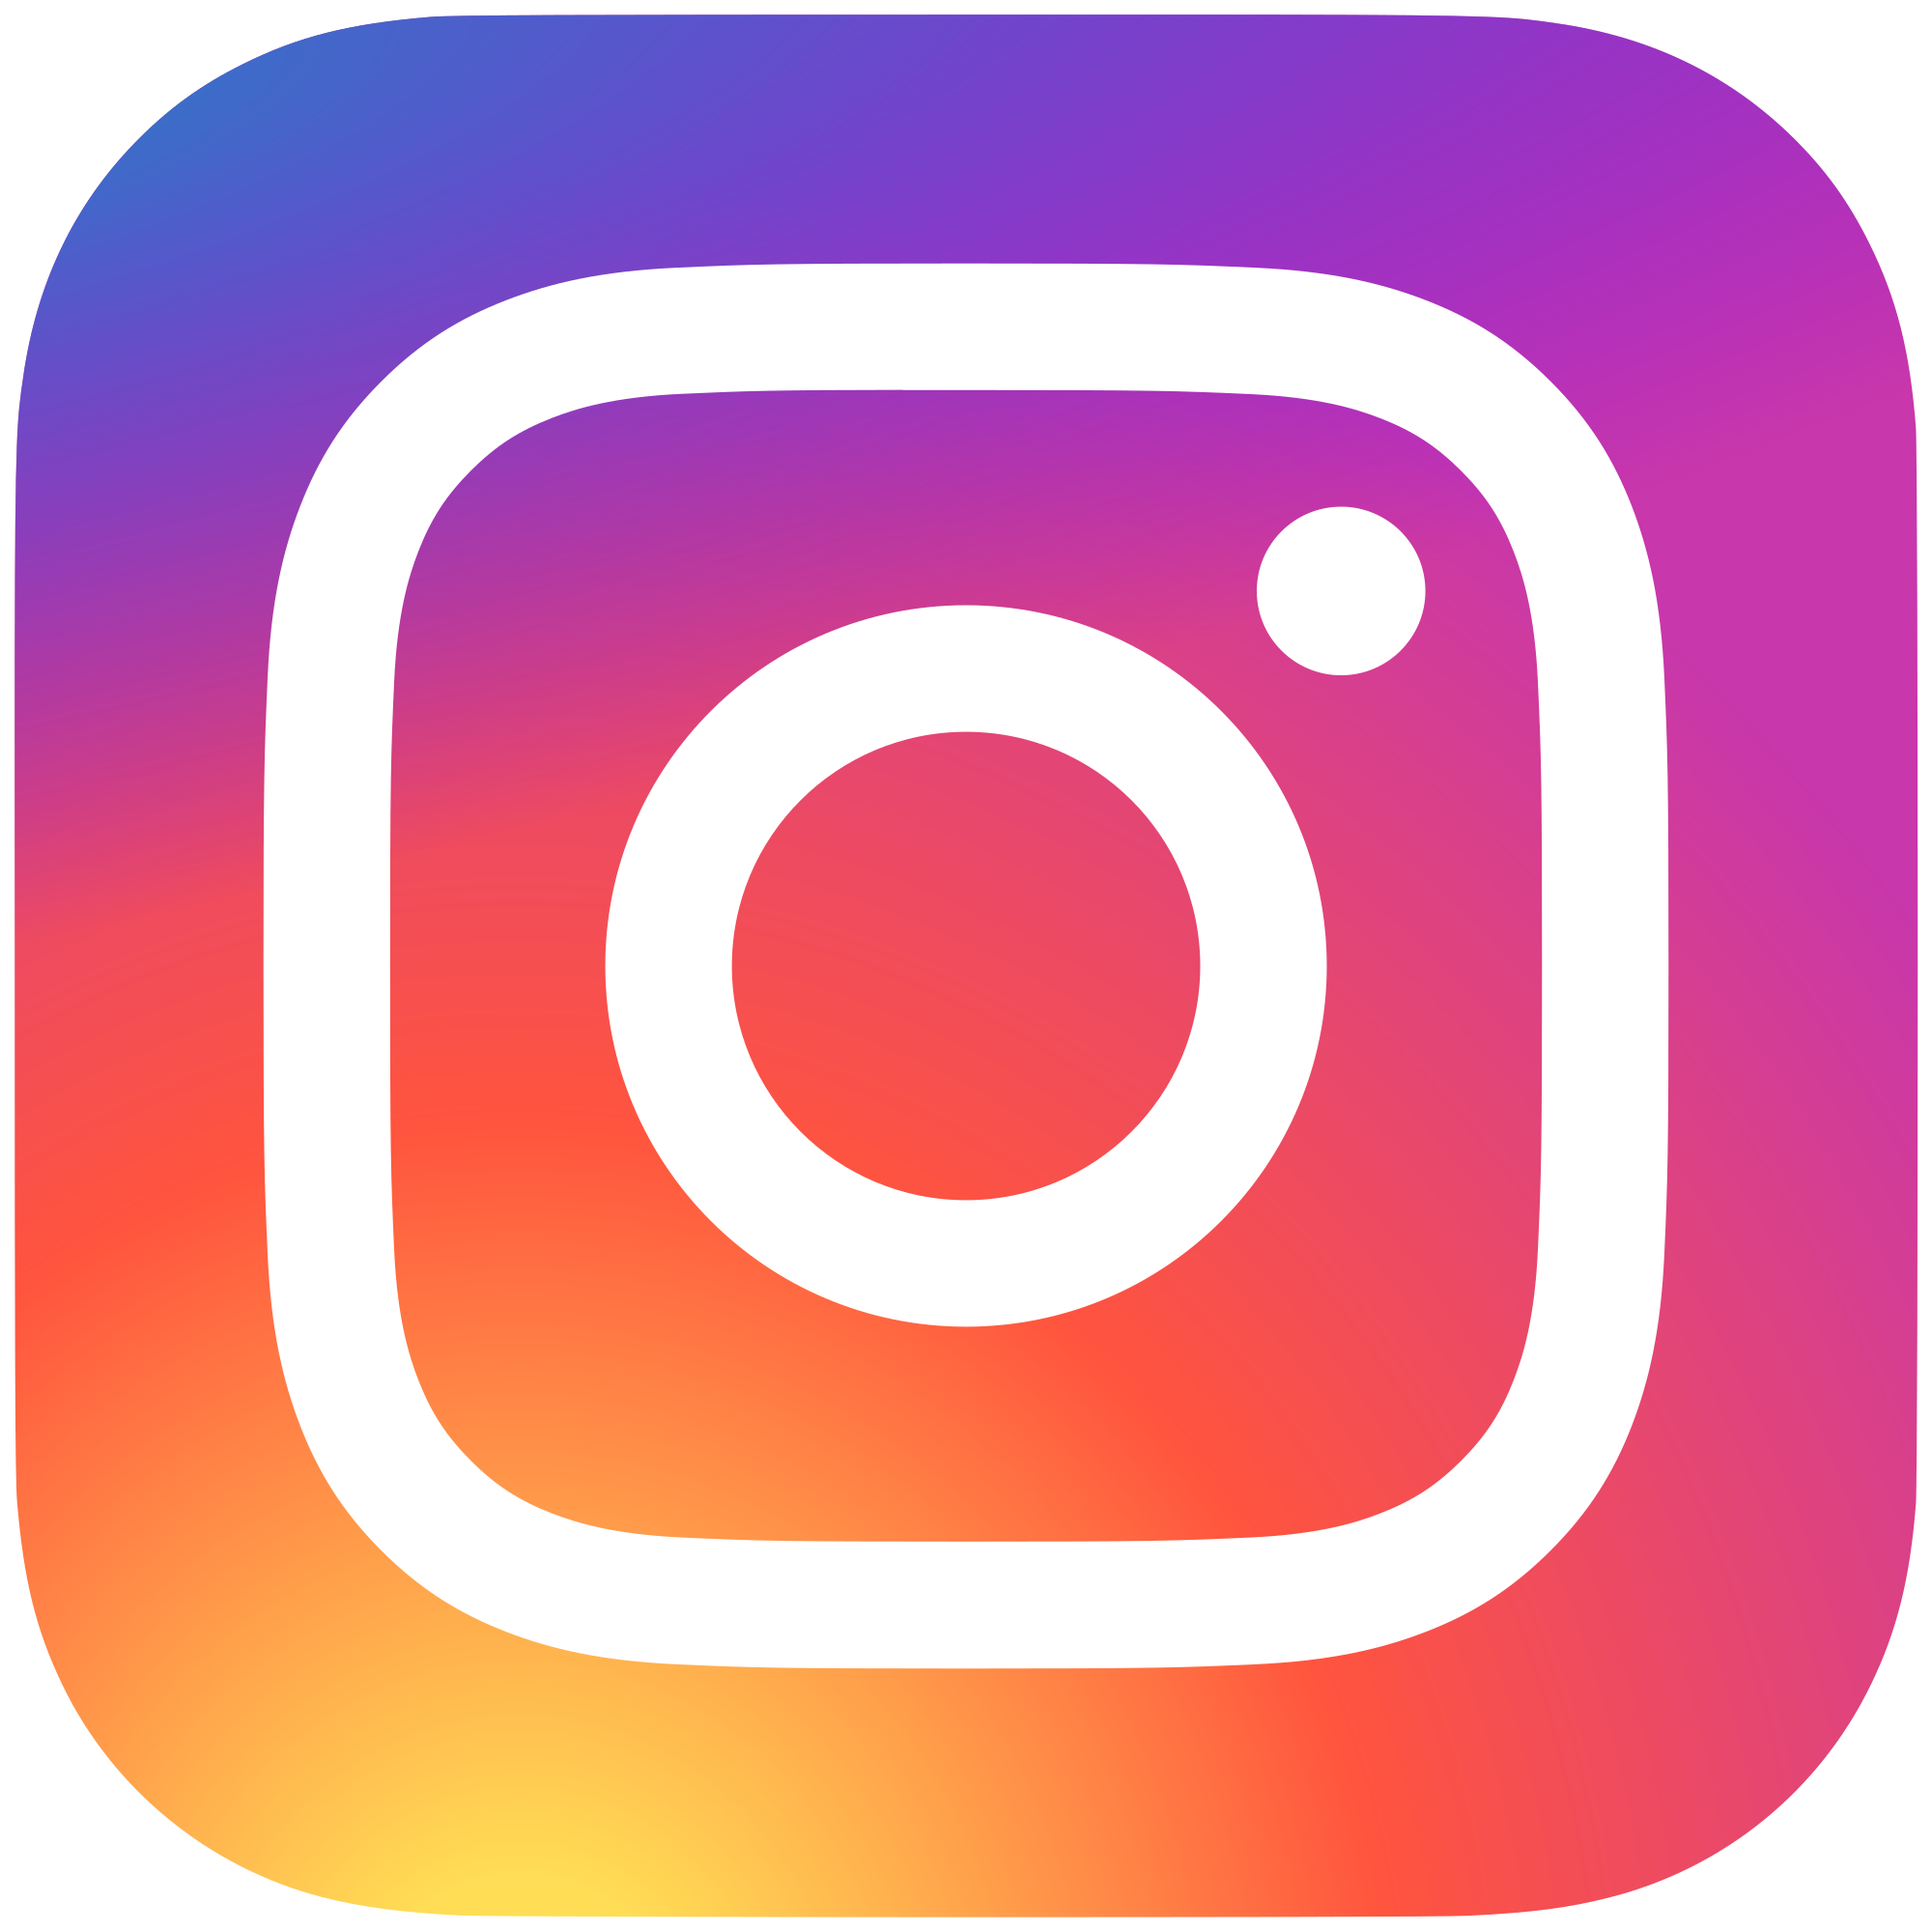 Instagram helps you focus your images Instagram logo